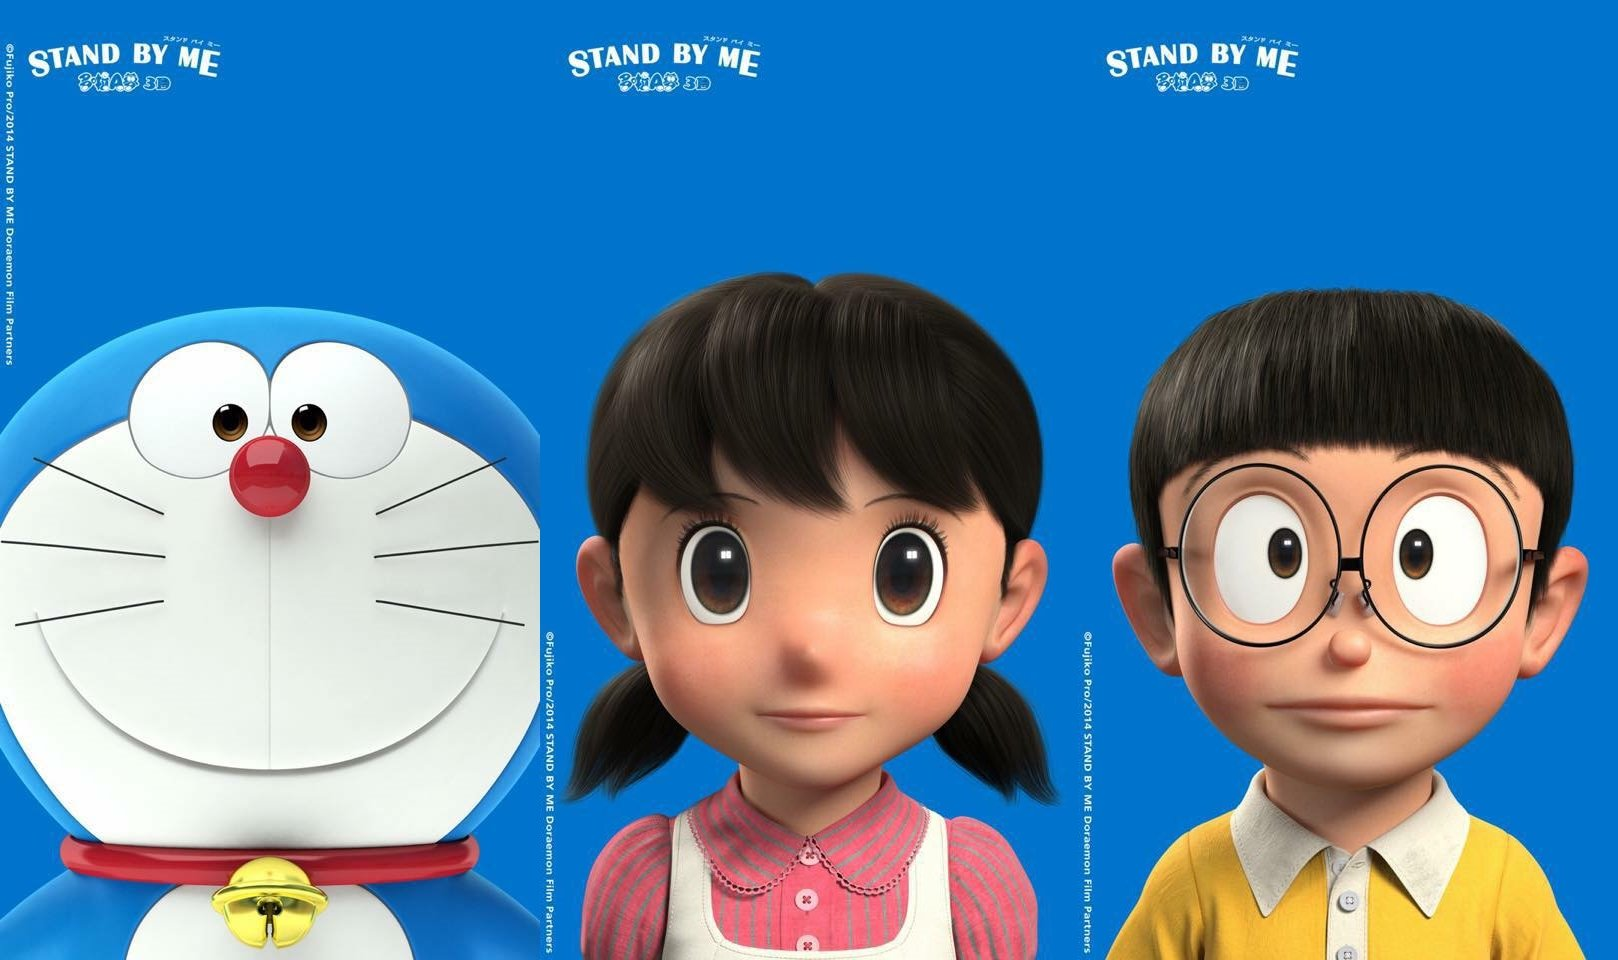 Free Wallpaper Stand By Me Doraemon [1618x960] For